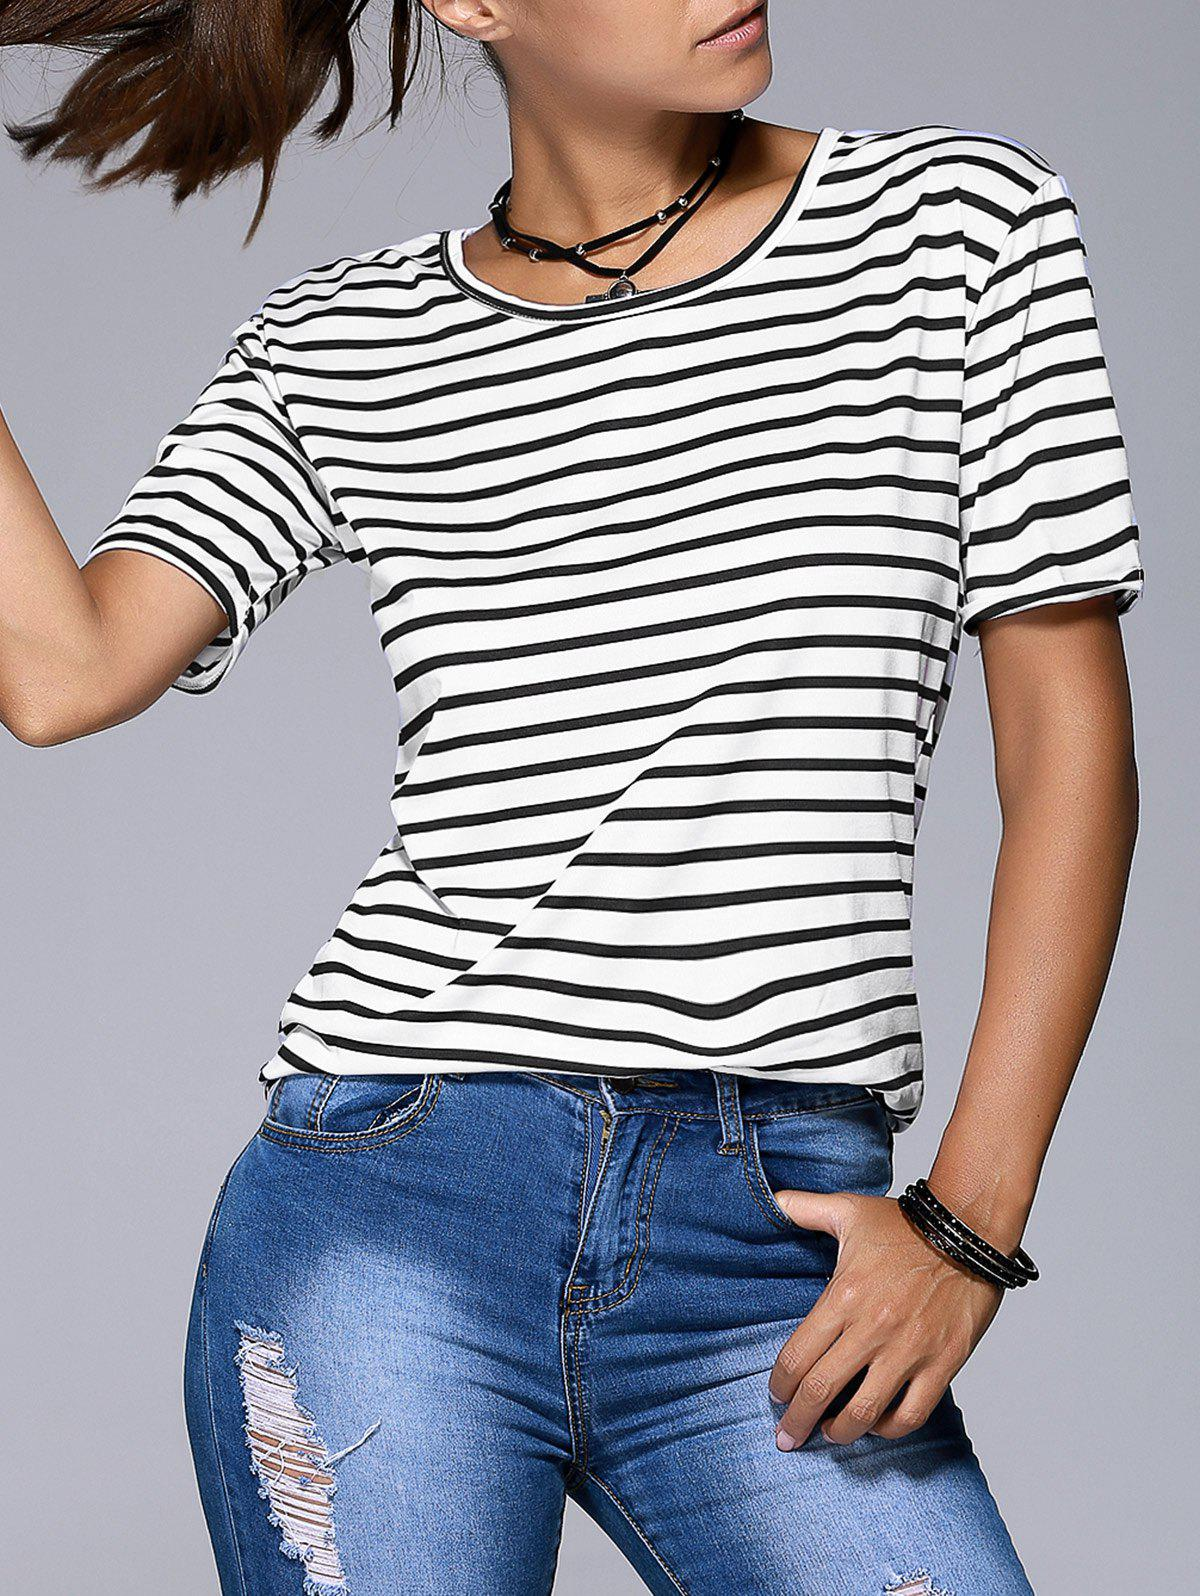 Women's Graceful Striped Short Sleeve T-Shirt - WHITE/BLACK XL